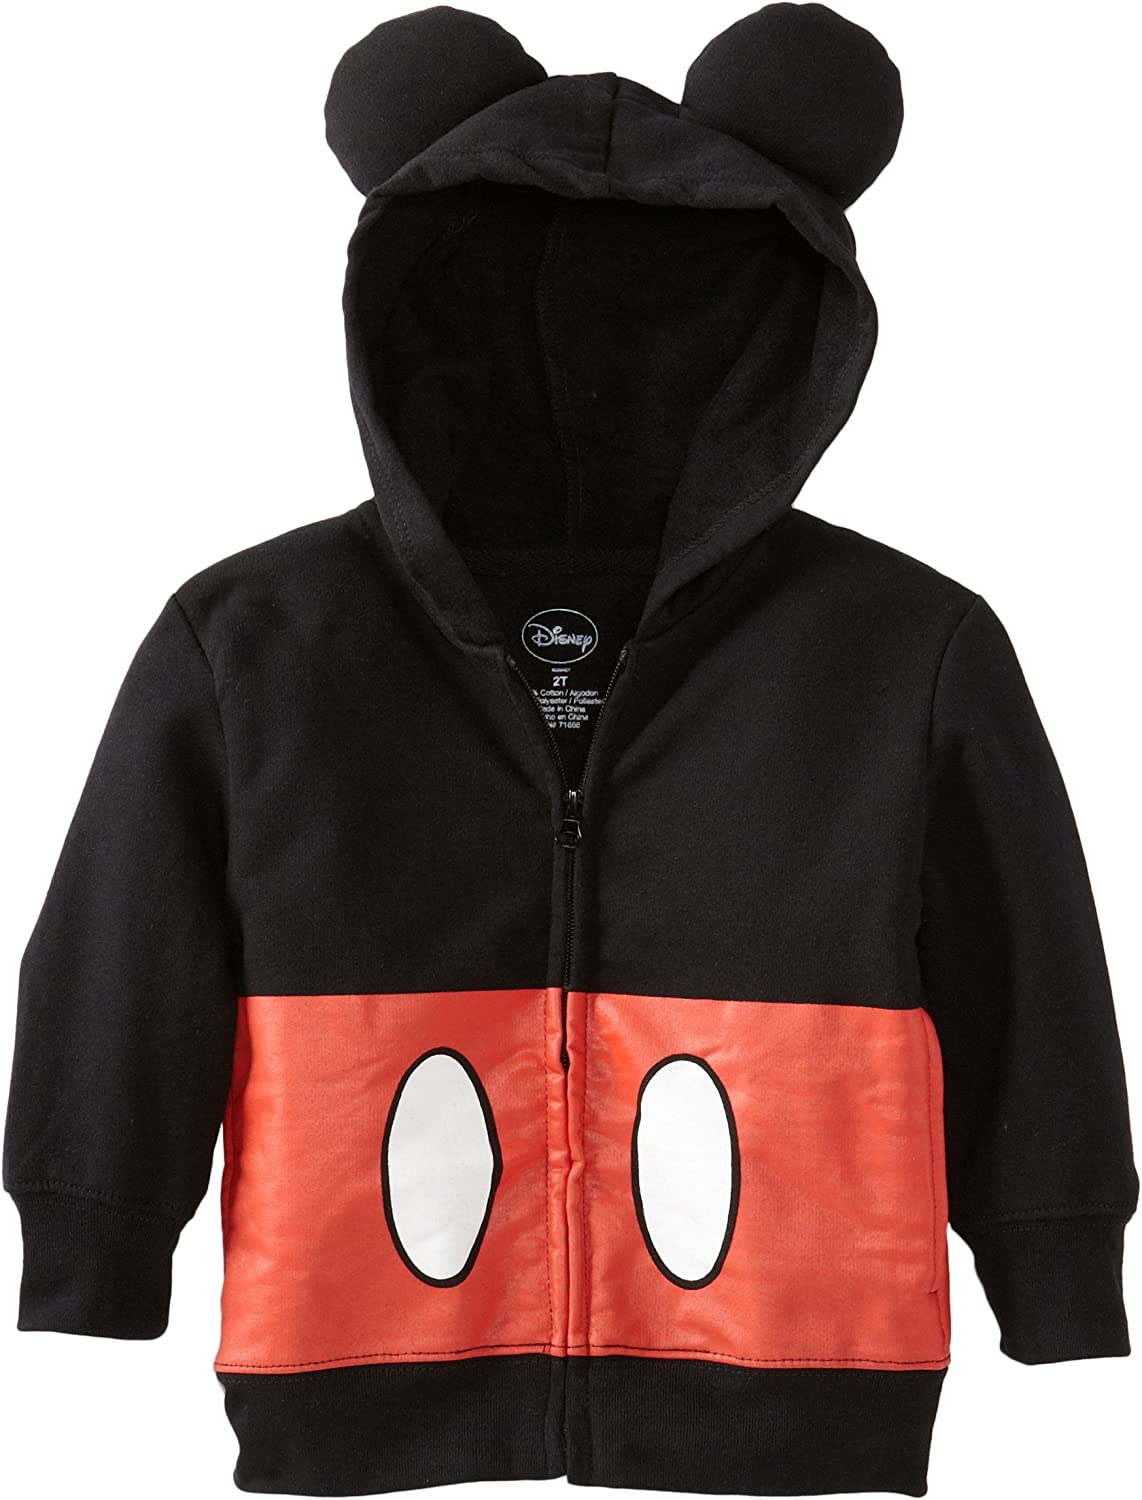 Disney Boys' Toddler Mickey Mouse Hoodie: Clothing